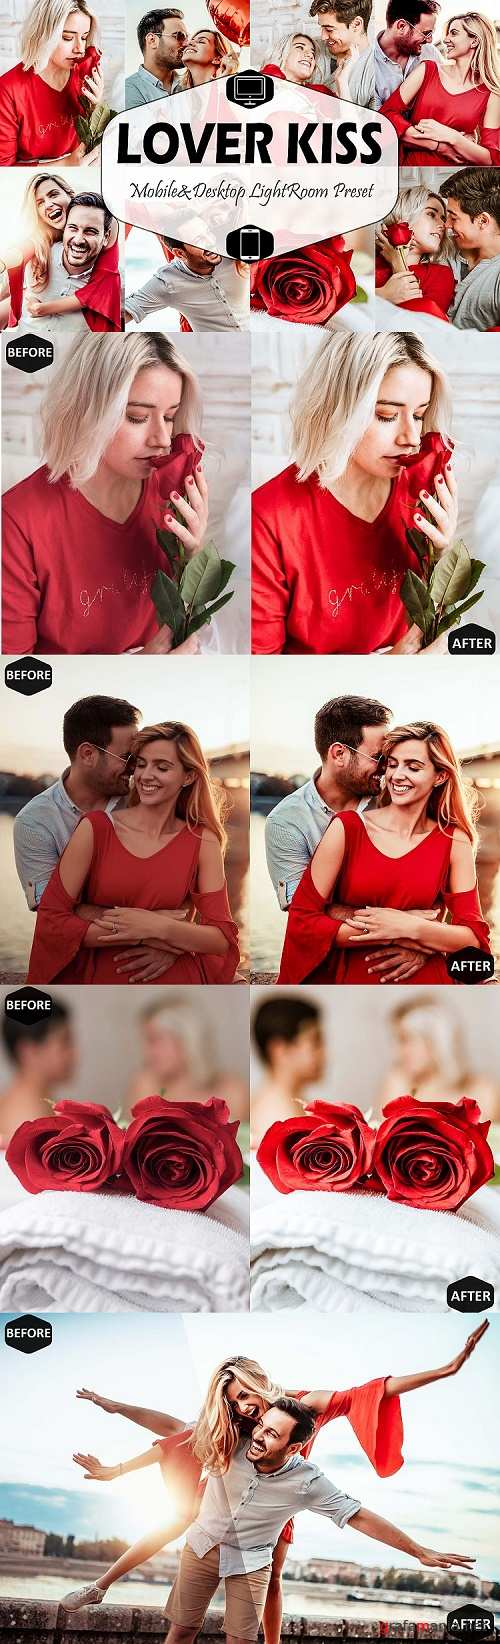 Lover Kiss Mobile & Desktop Lightroom Presets, Valentine - 428984